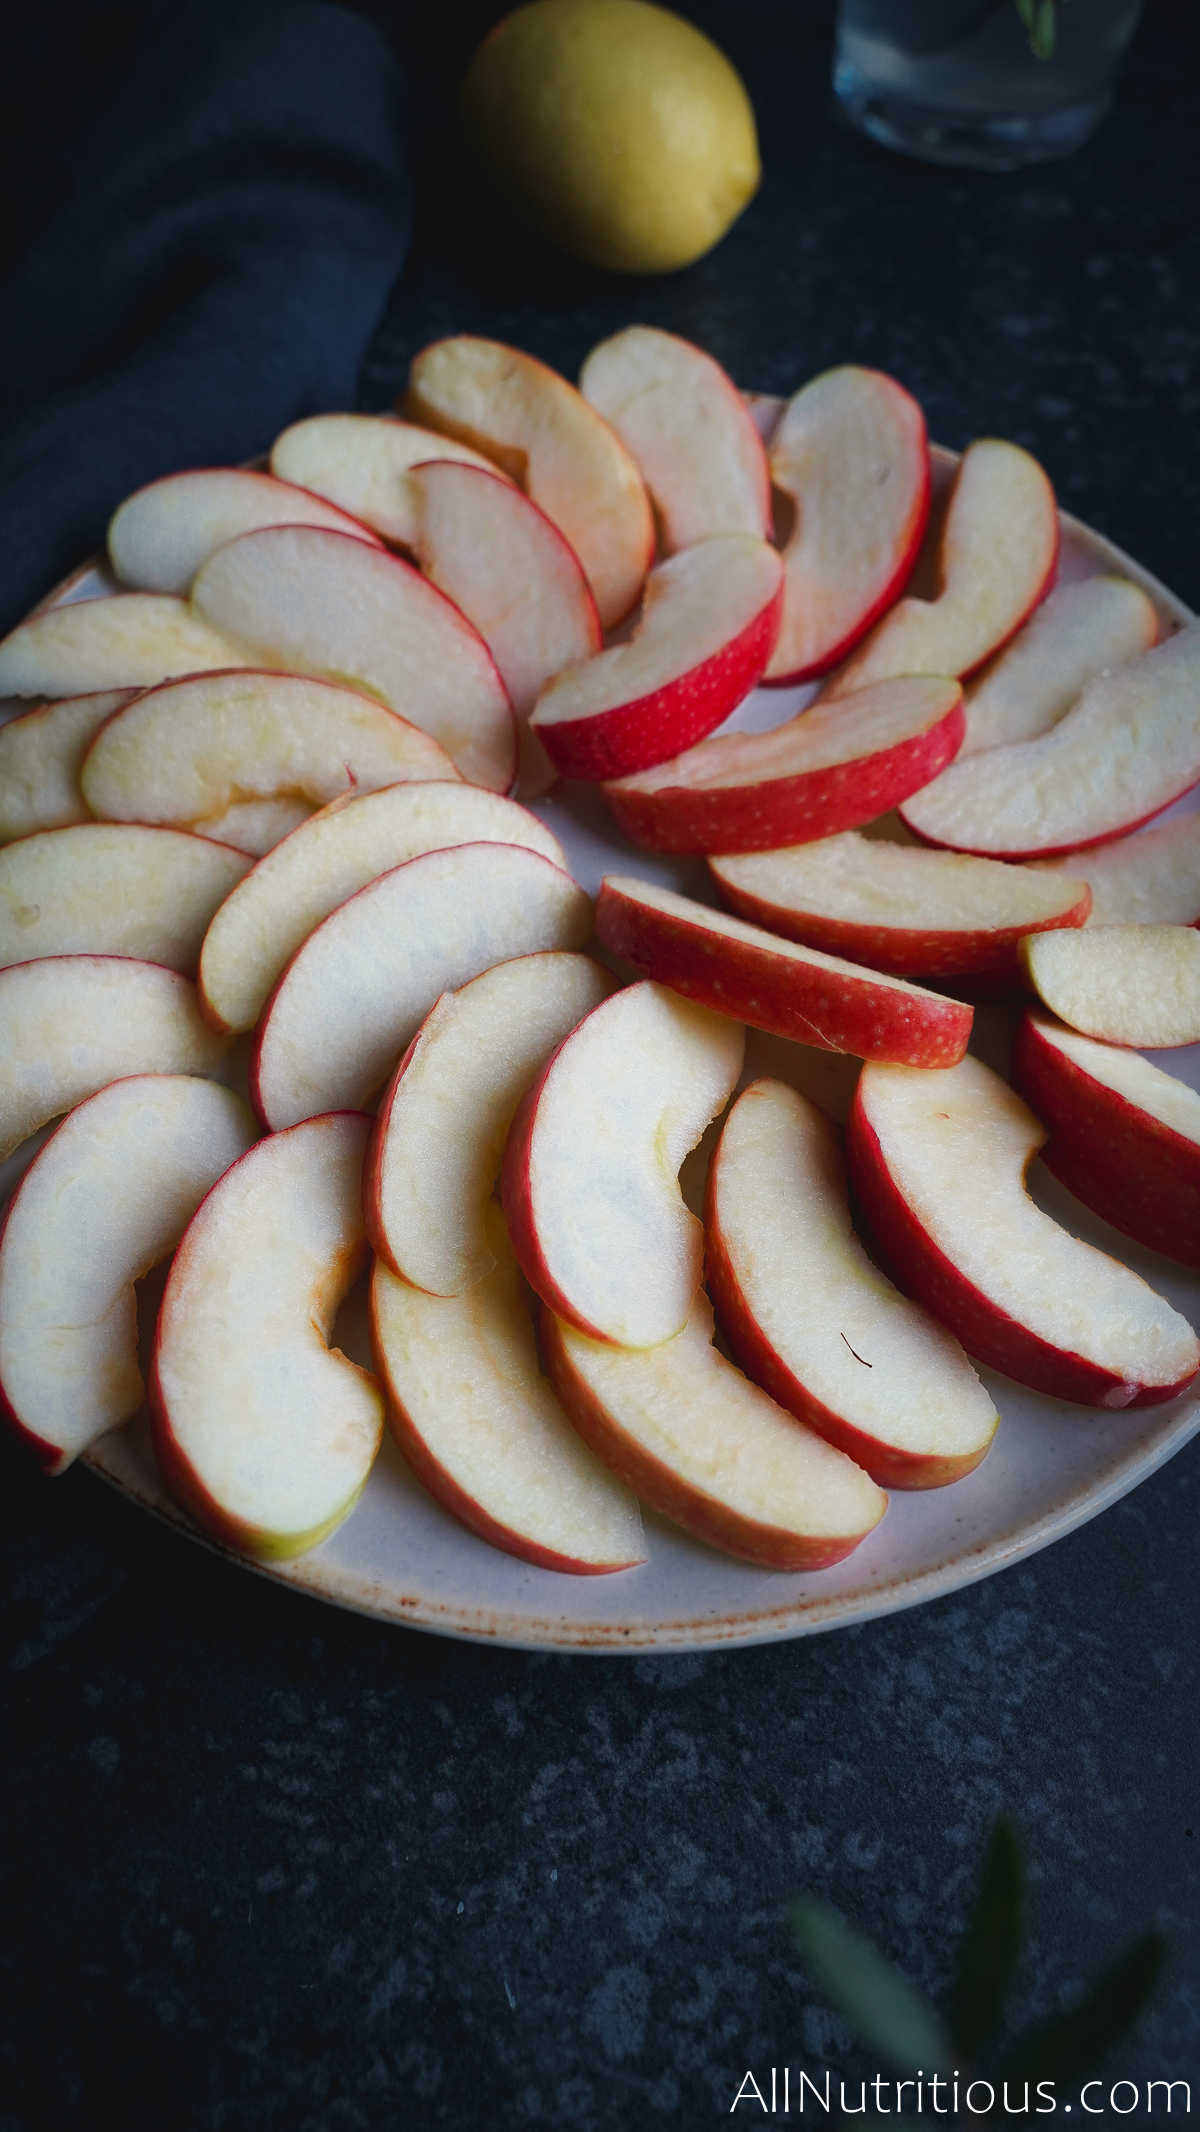 sliced apples placed in a circle